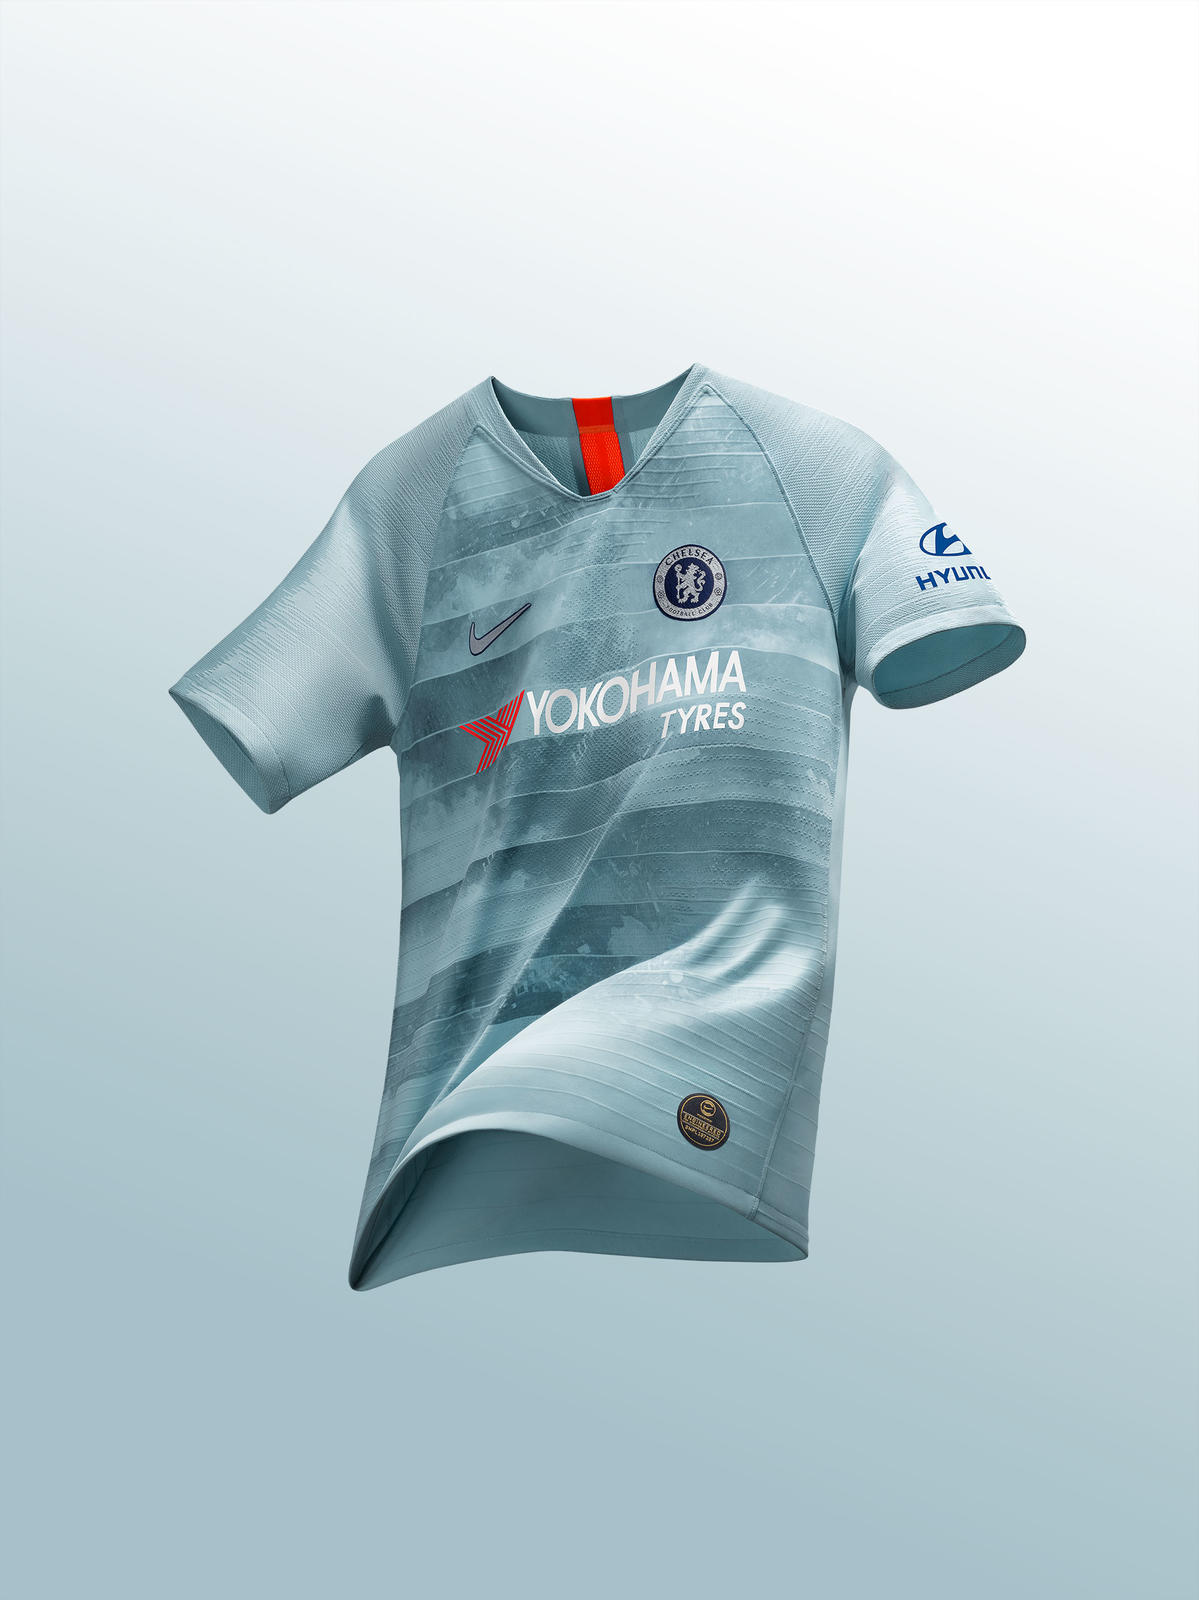 san francisco f212f 76cf1 The Chelsea FC 2018-2019 Kit Unlocks A New Way for Fans to ...